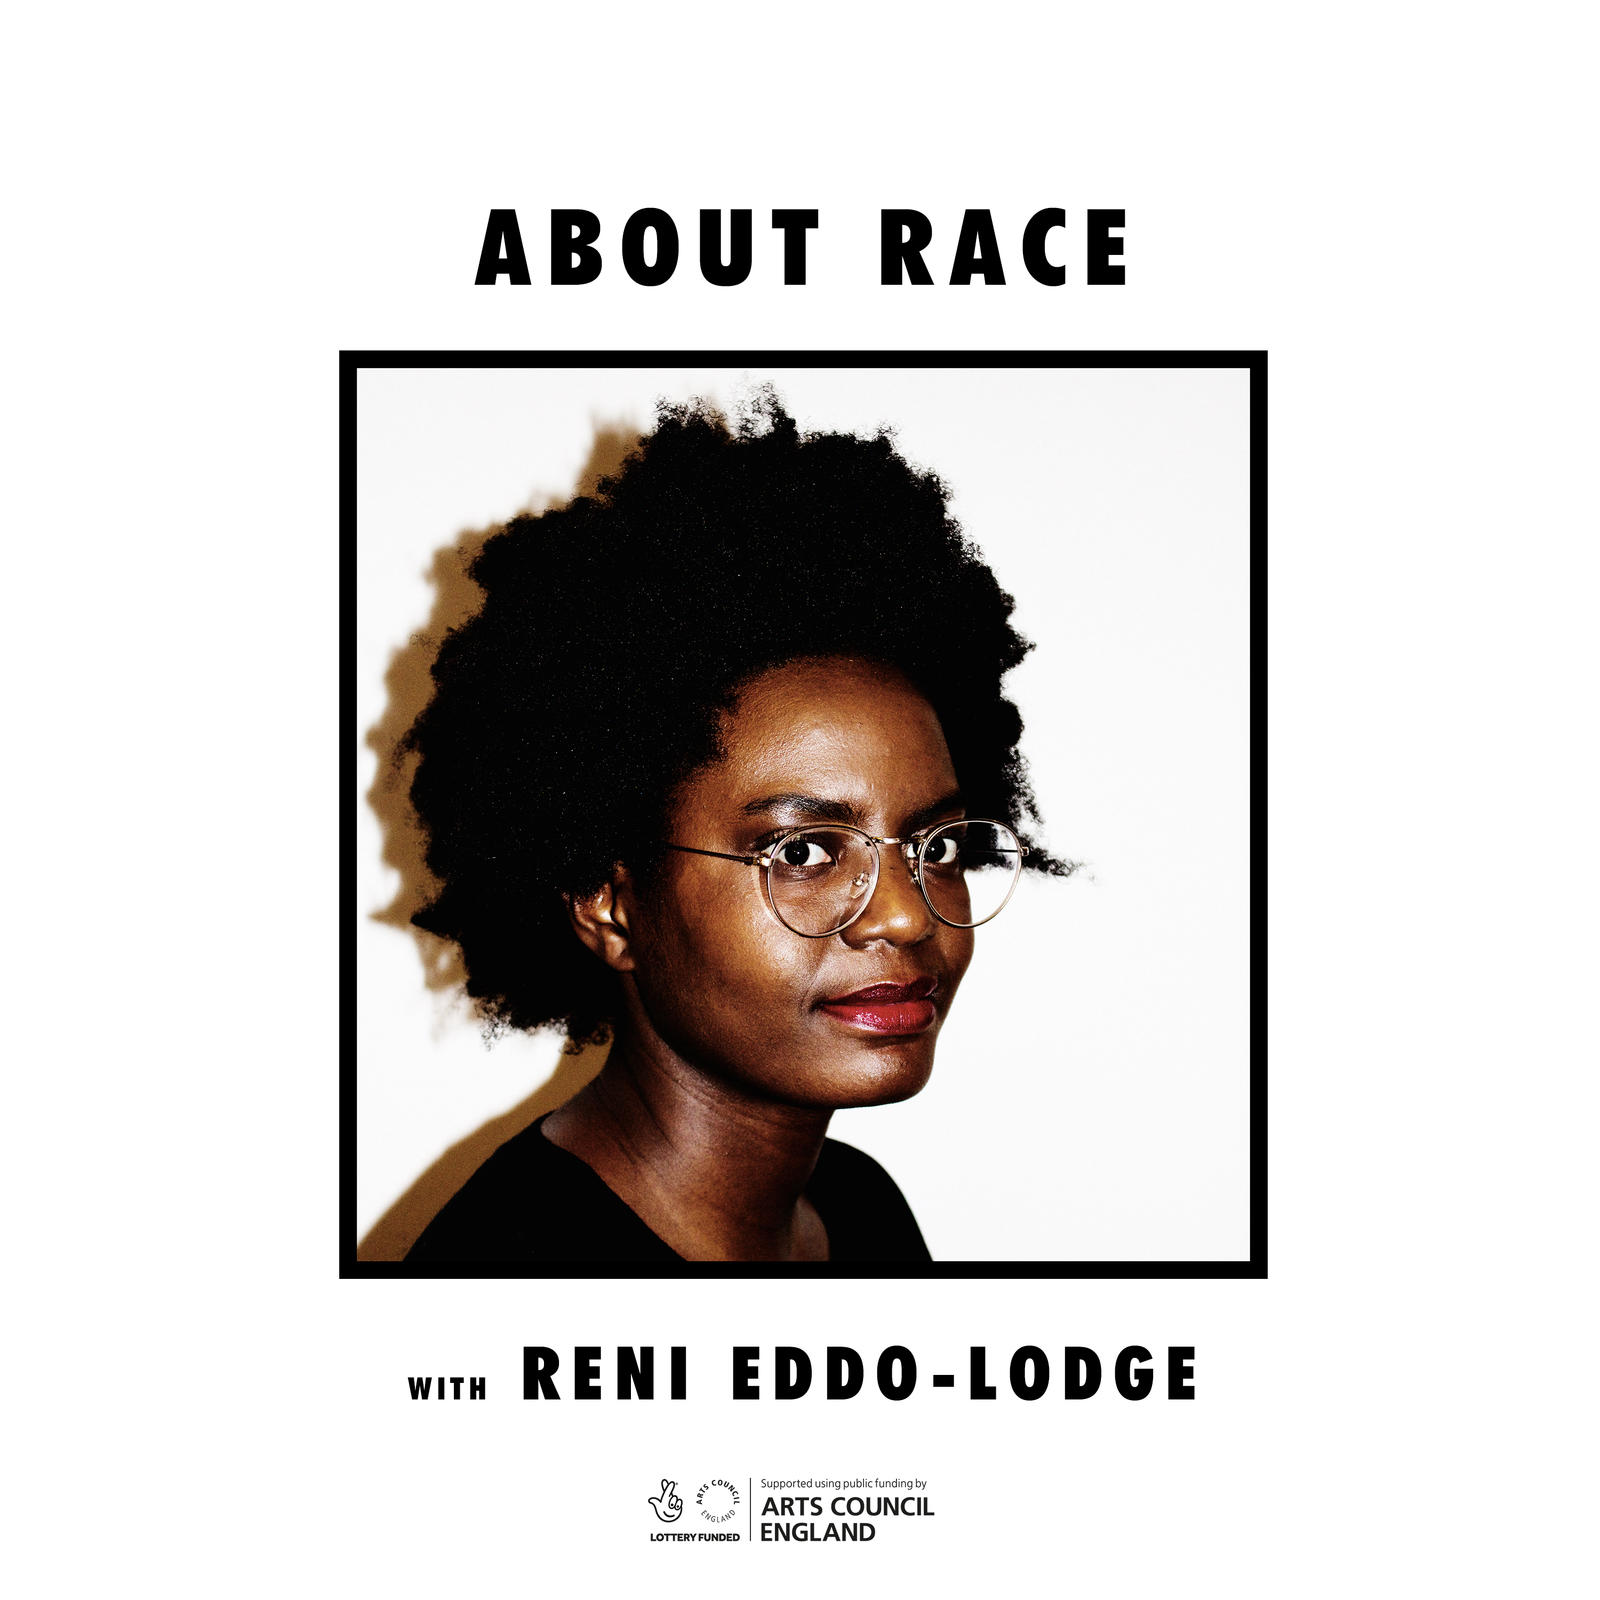 1) About Race with Reni Eddo-Lodge